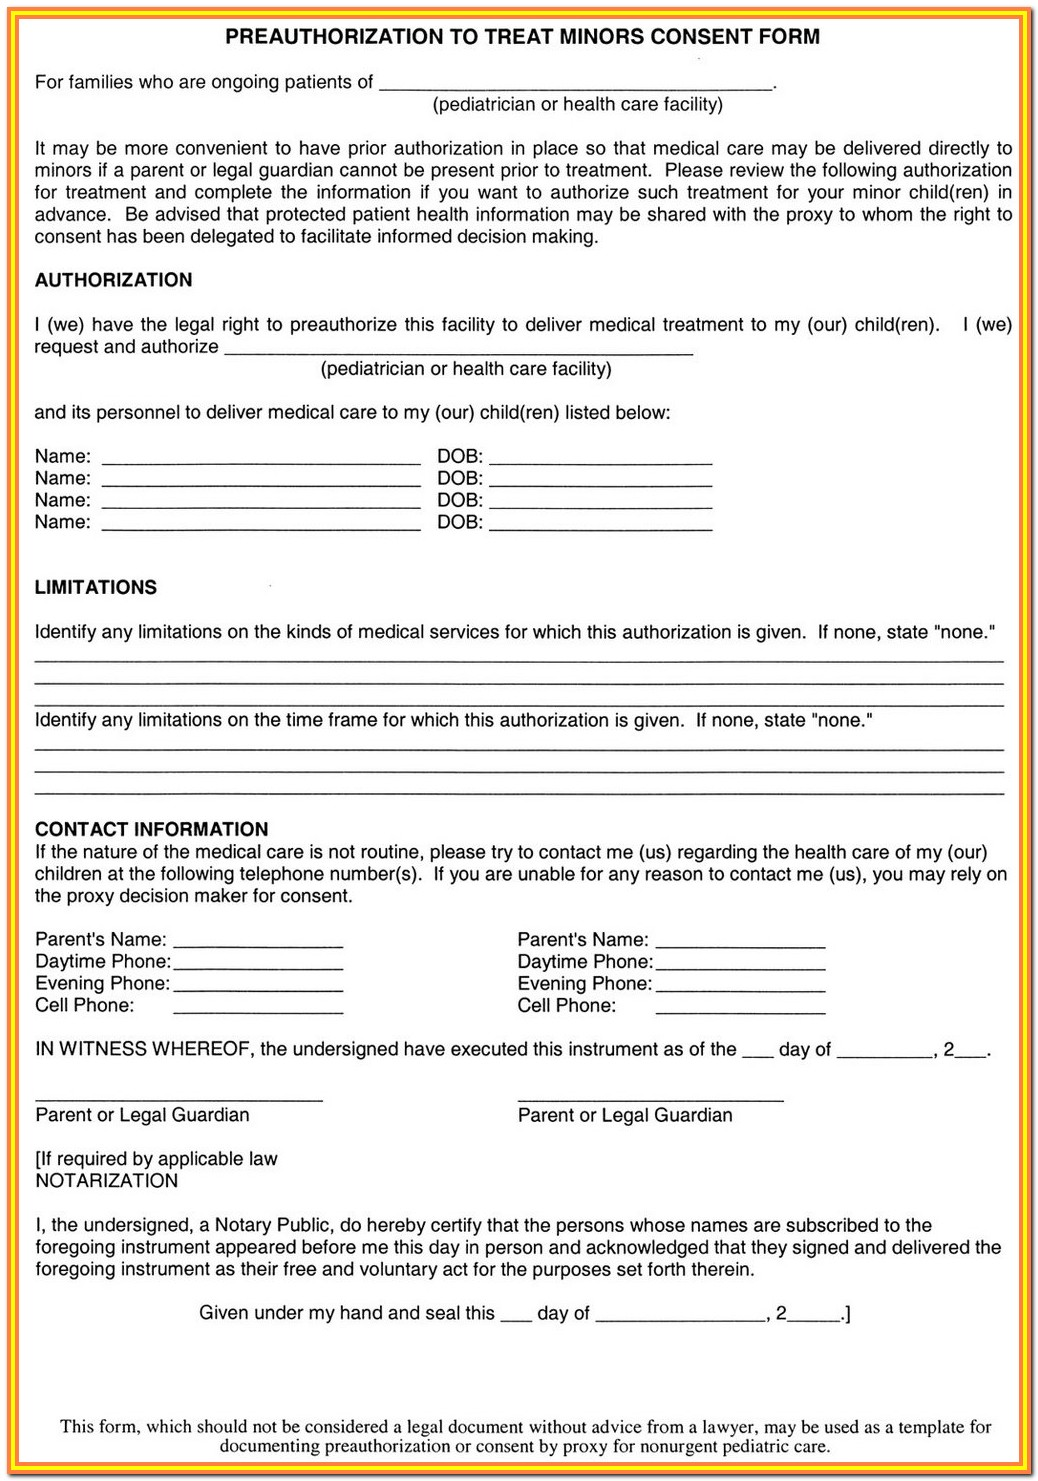 Ohio Dissolution Of Marriage Paperwork